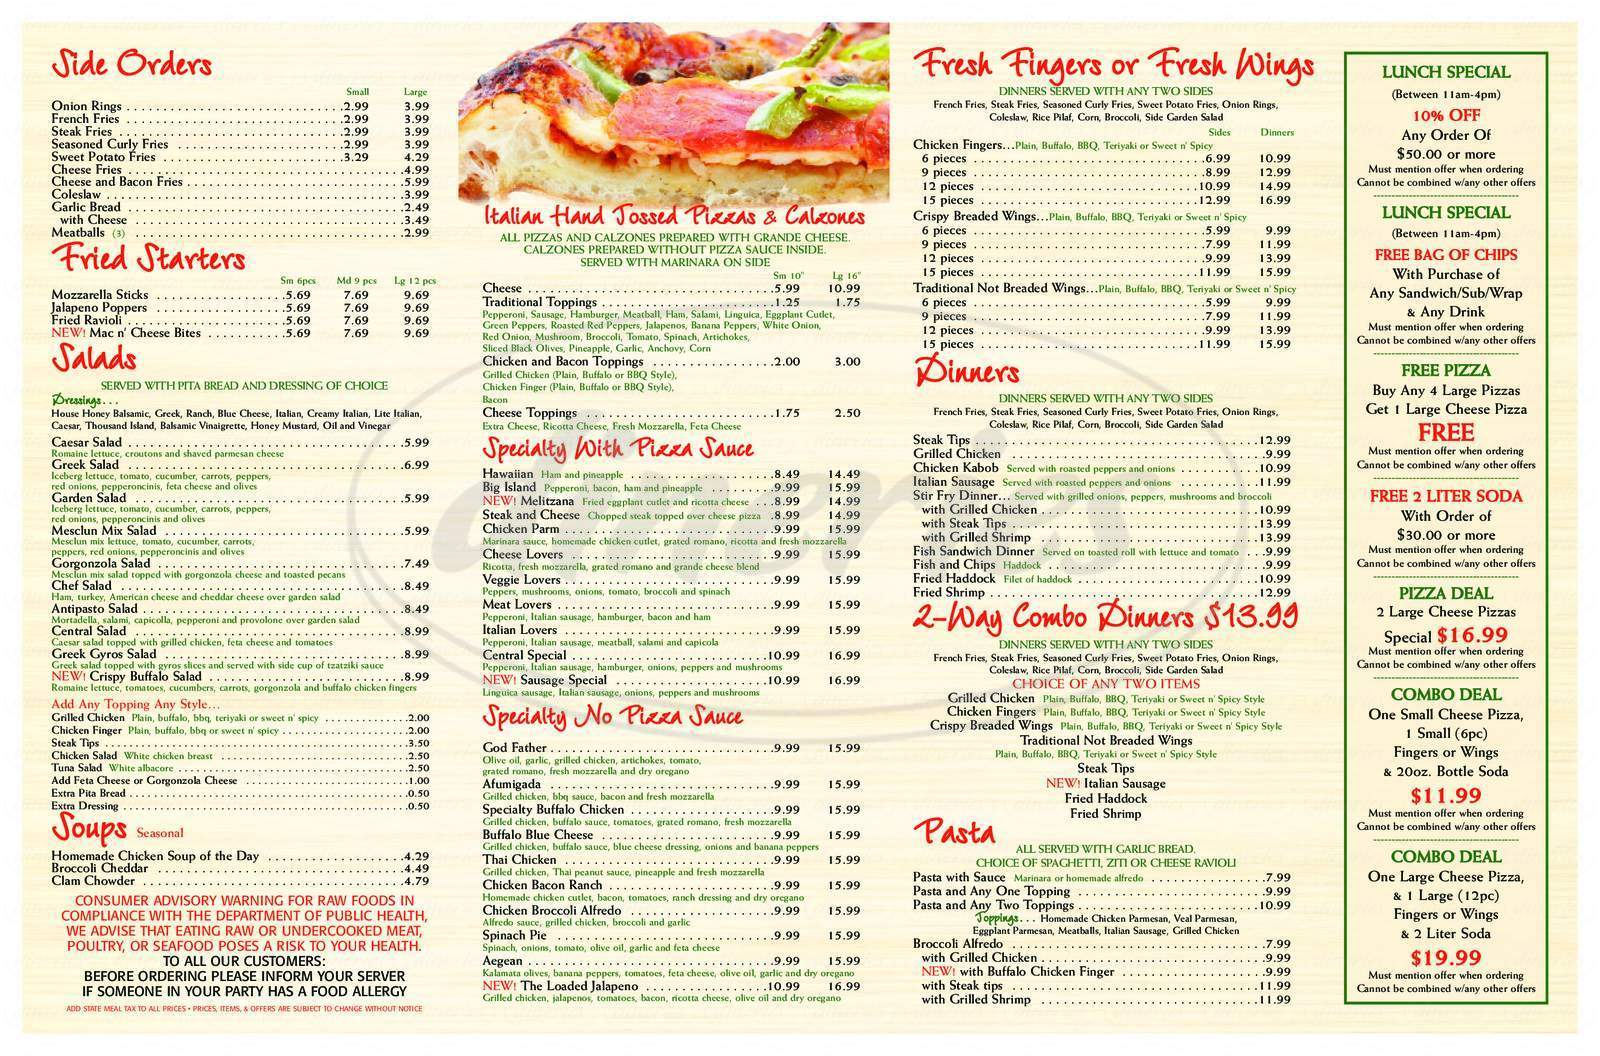 menu for Central Street Pizzeria & Grille